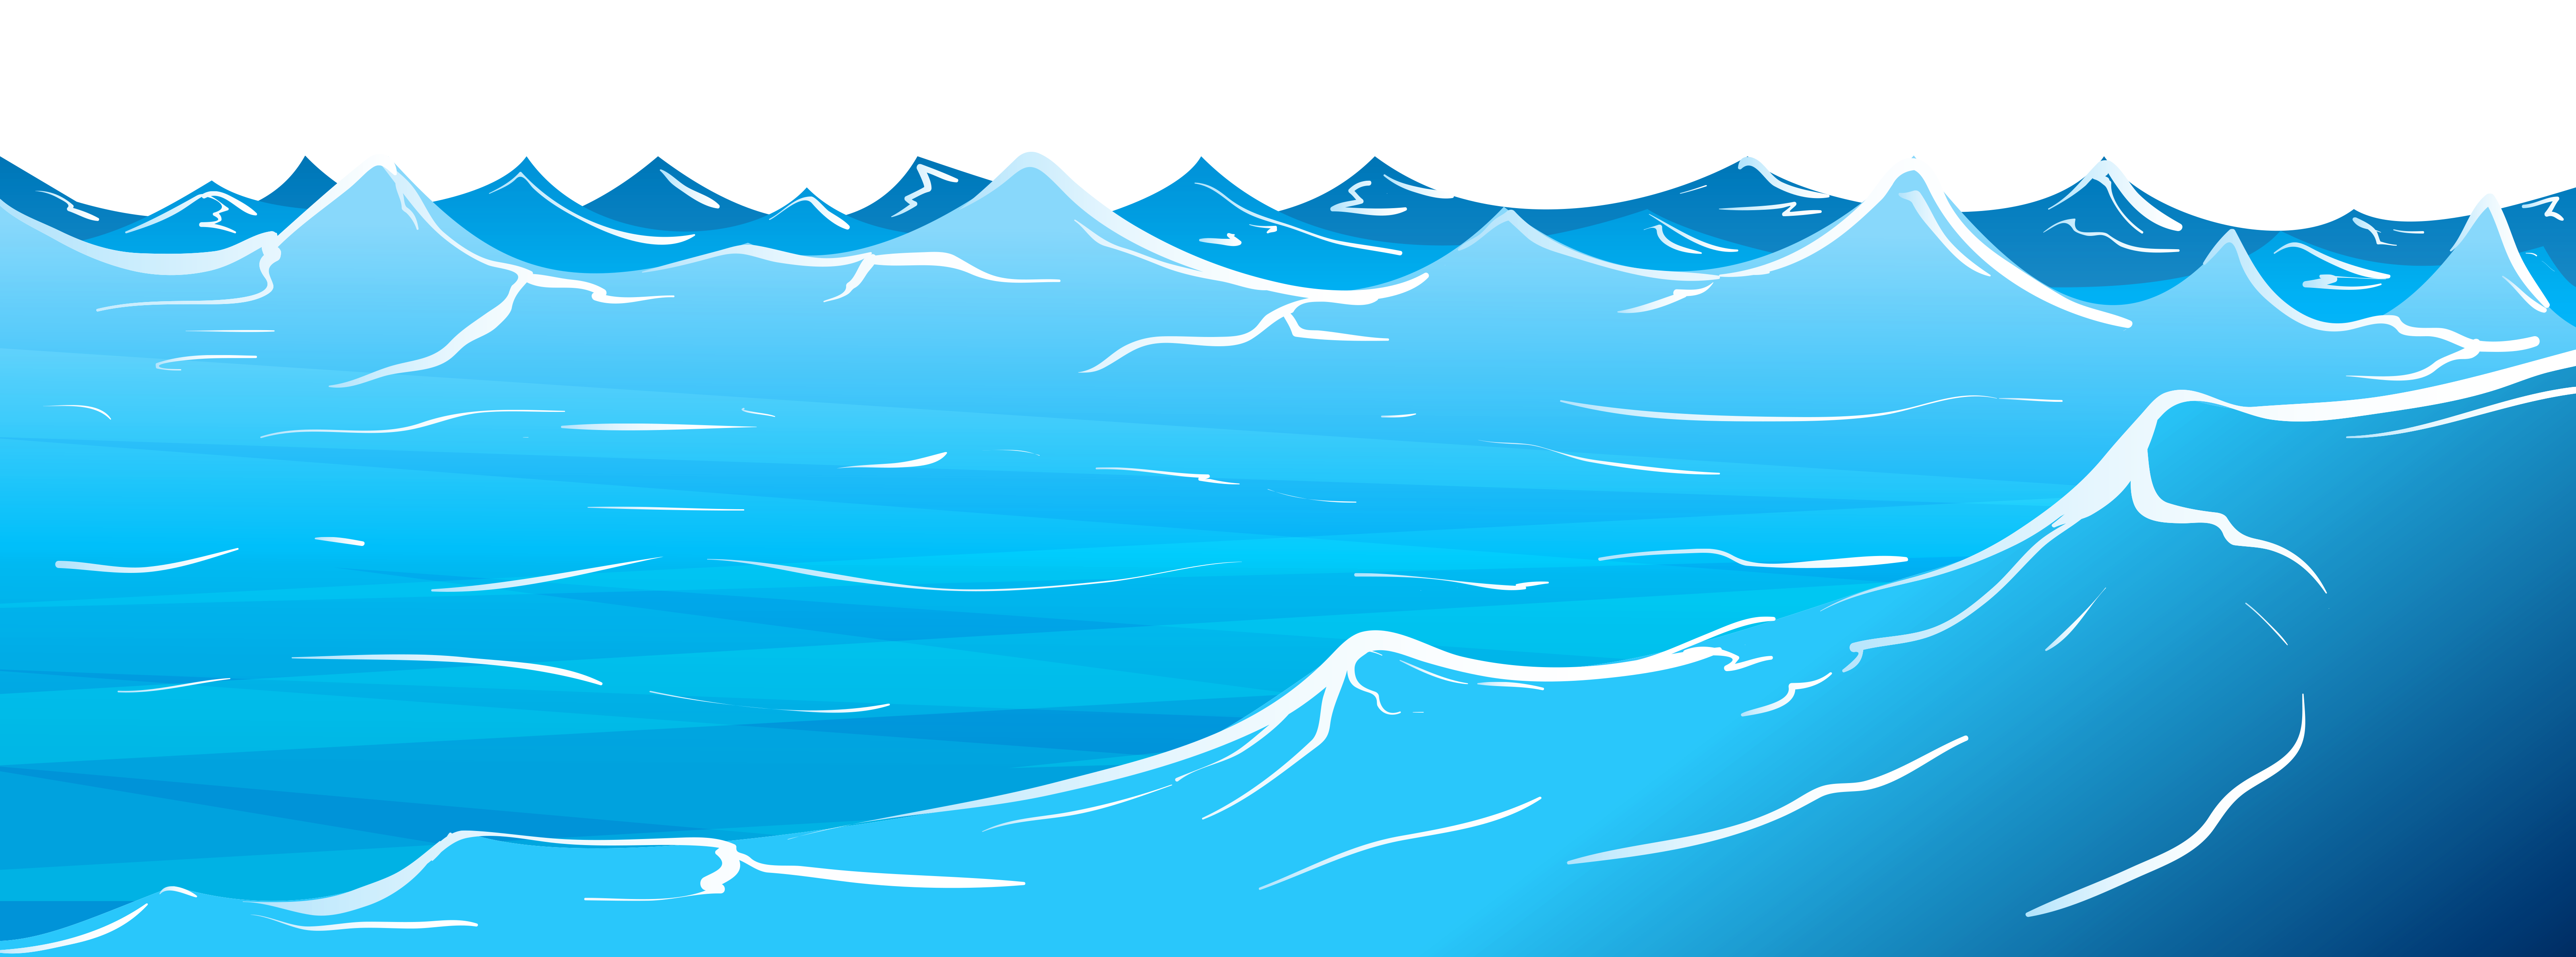 Wave b clipart picture freeuse stock Free Ocean Background Cliparts, Download Free Clip Art, Free ... picture freeuse stock